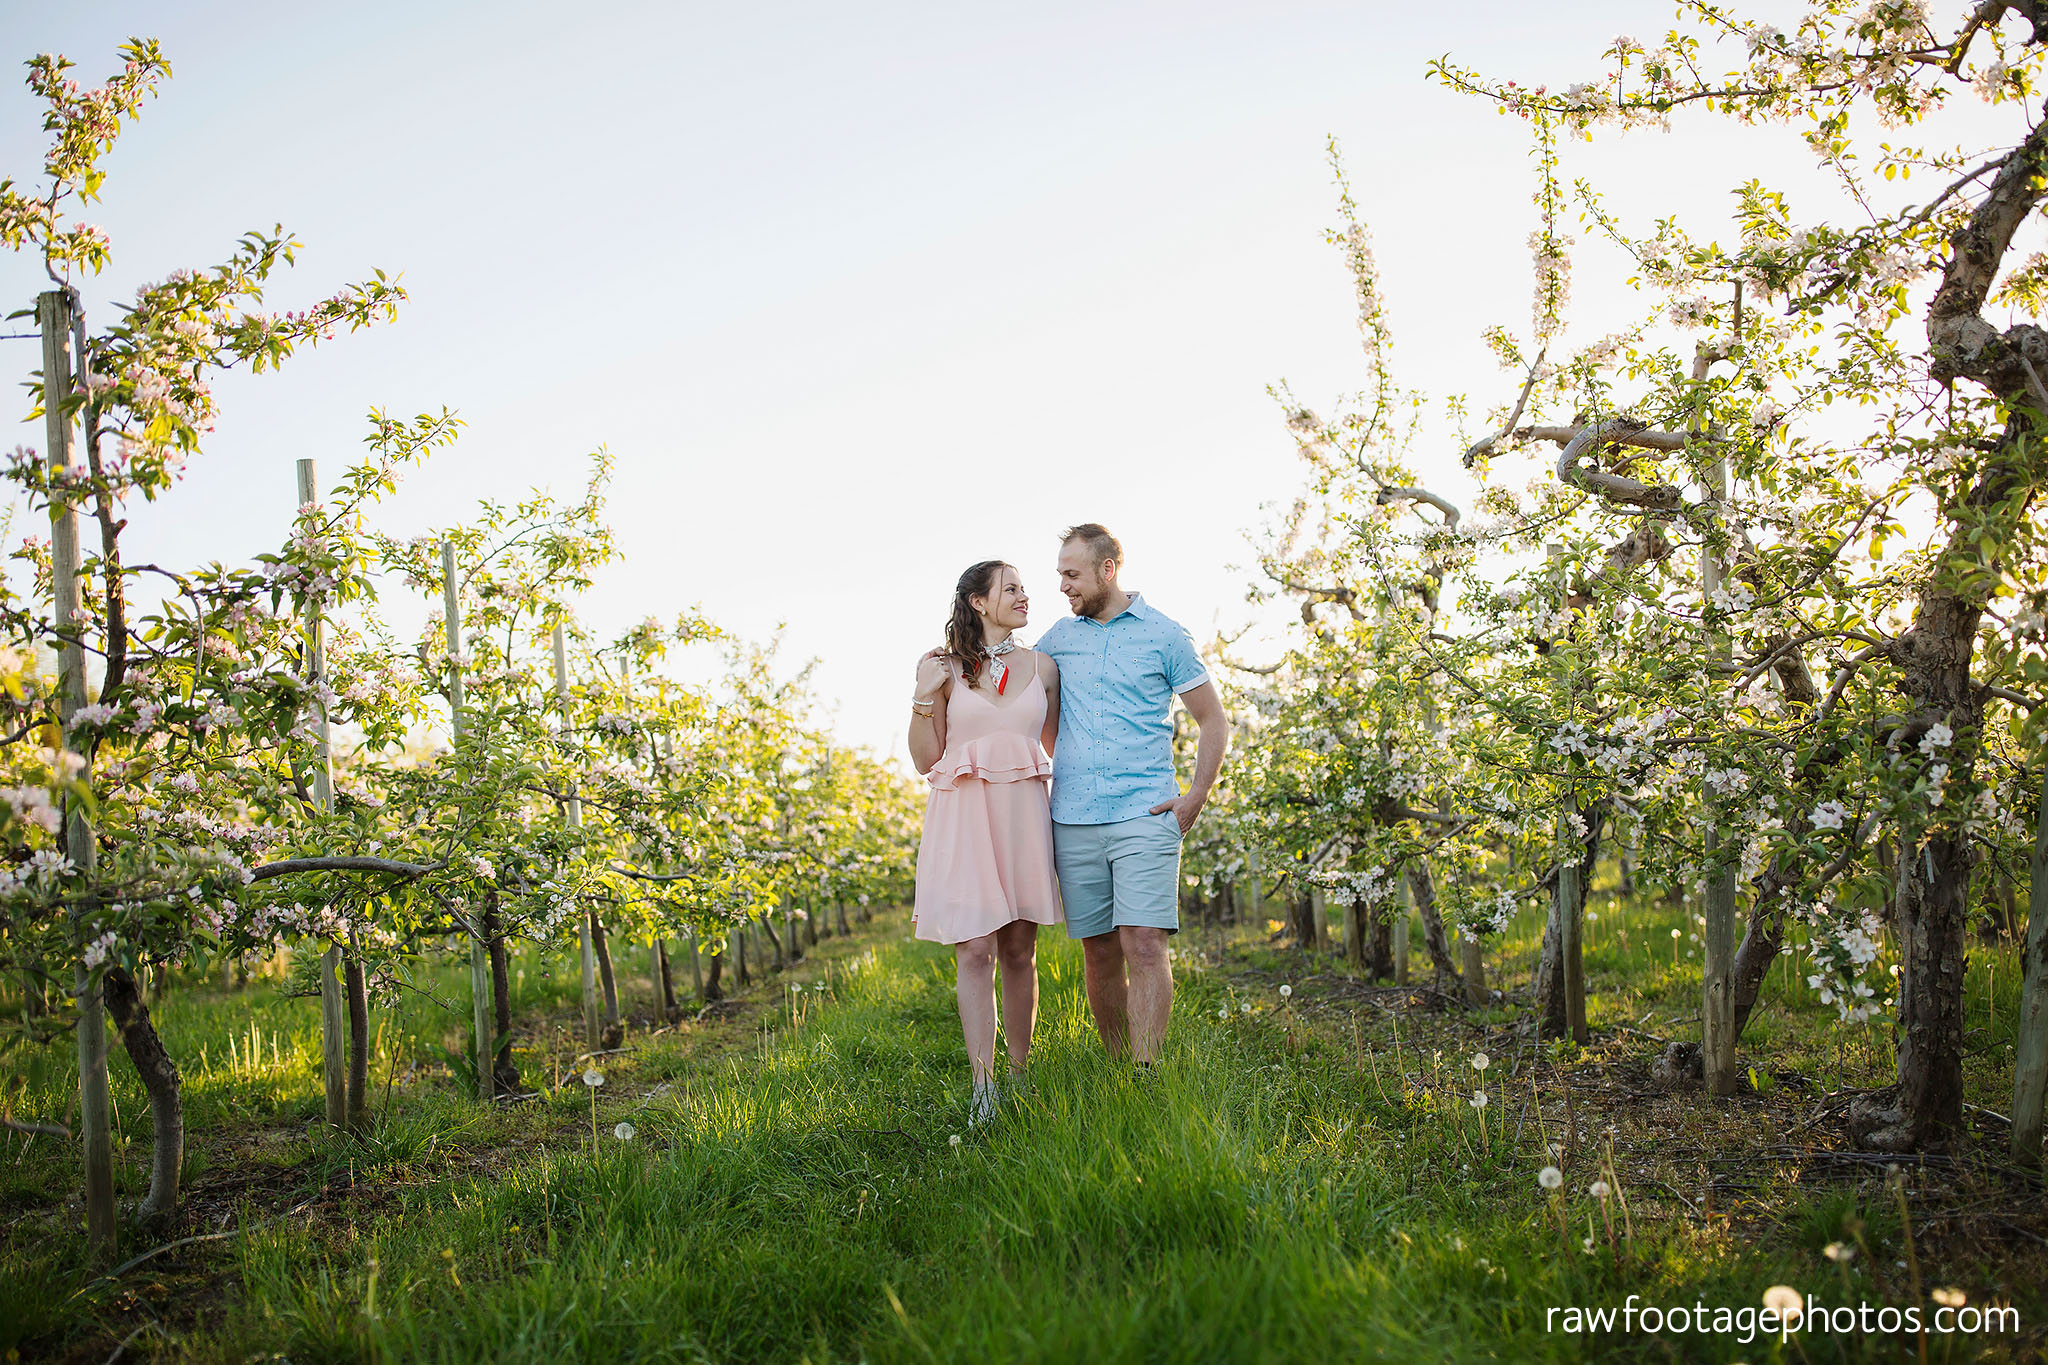 london_ontario_wedding_photographer-raw_footage_photography-engagement_session-airport_session-airplane-balloons-apple_orchard-spring_blooms-apple_blossoms025.jpg